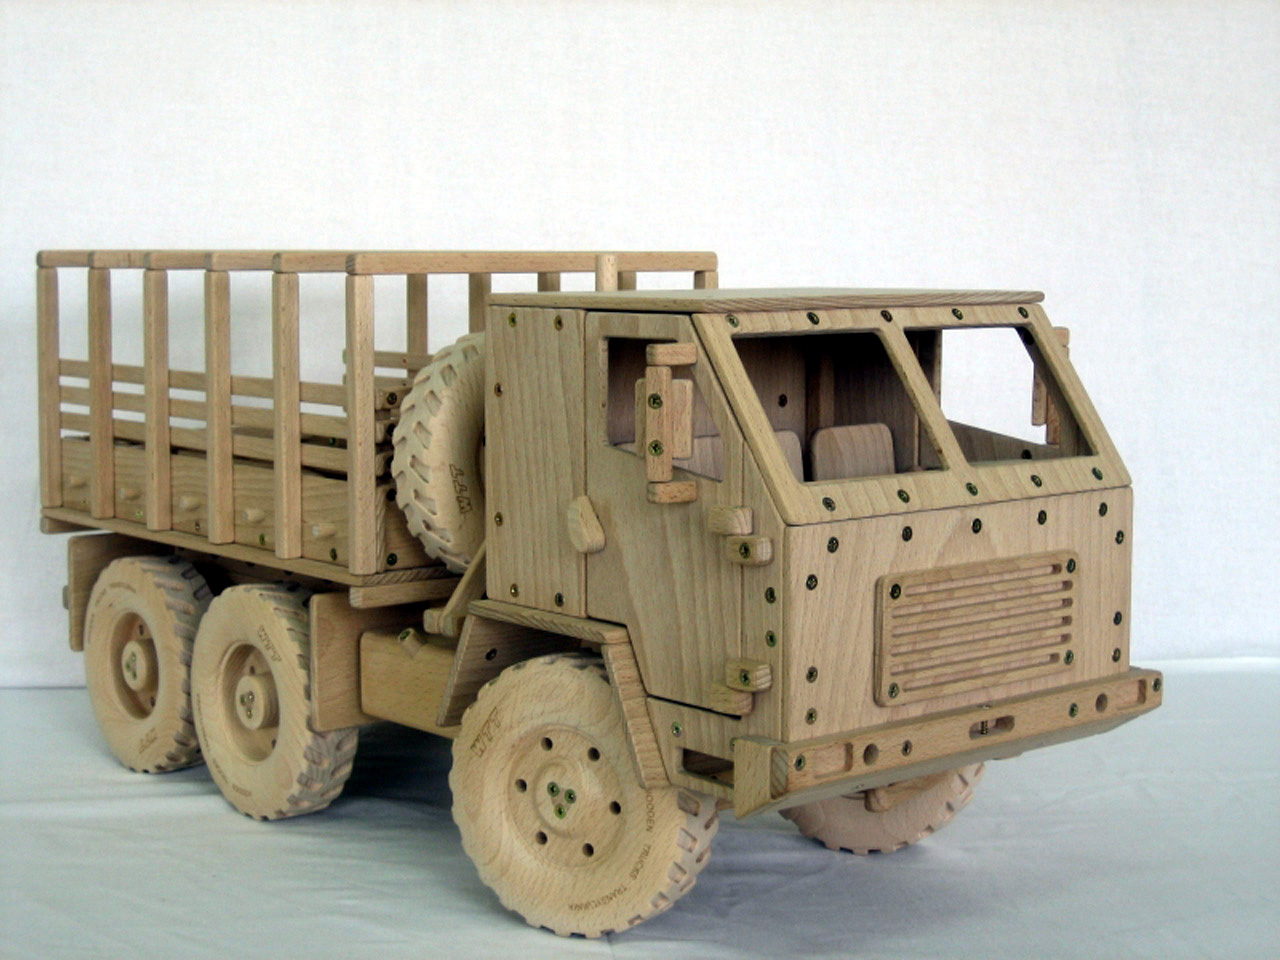 ... toy truck plans can help you to easily build your wooden wooden toy